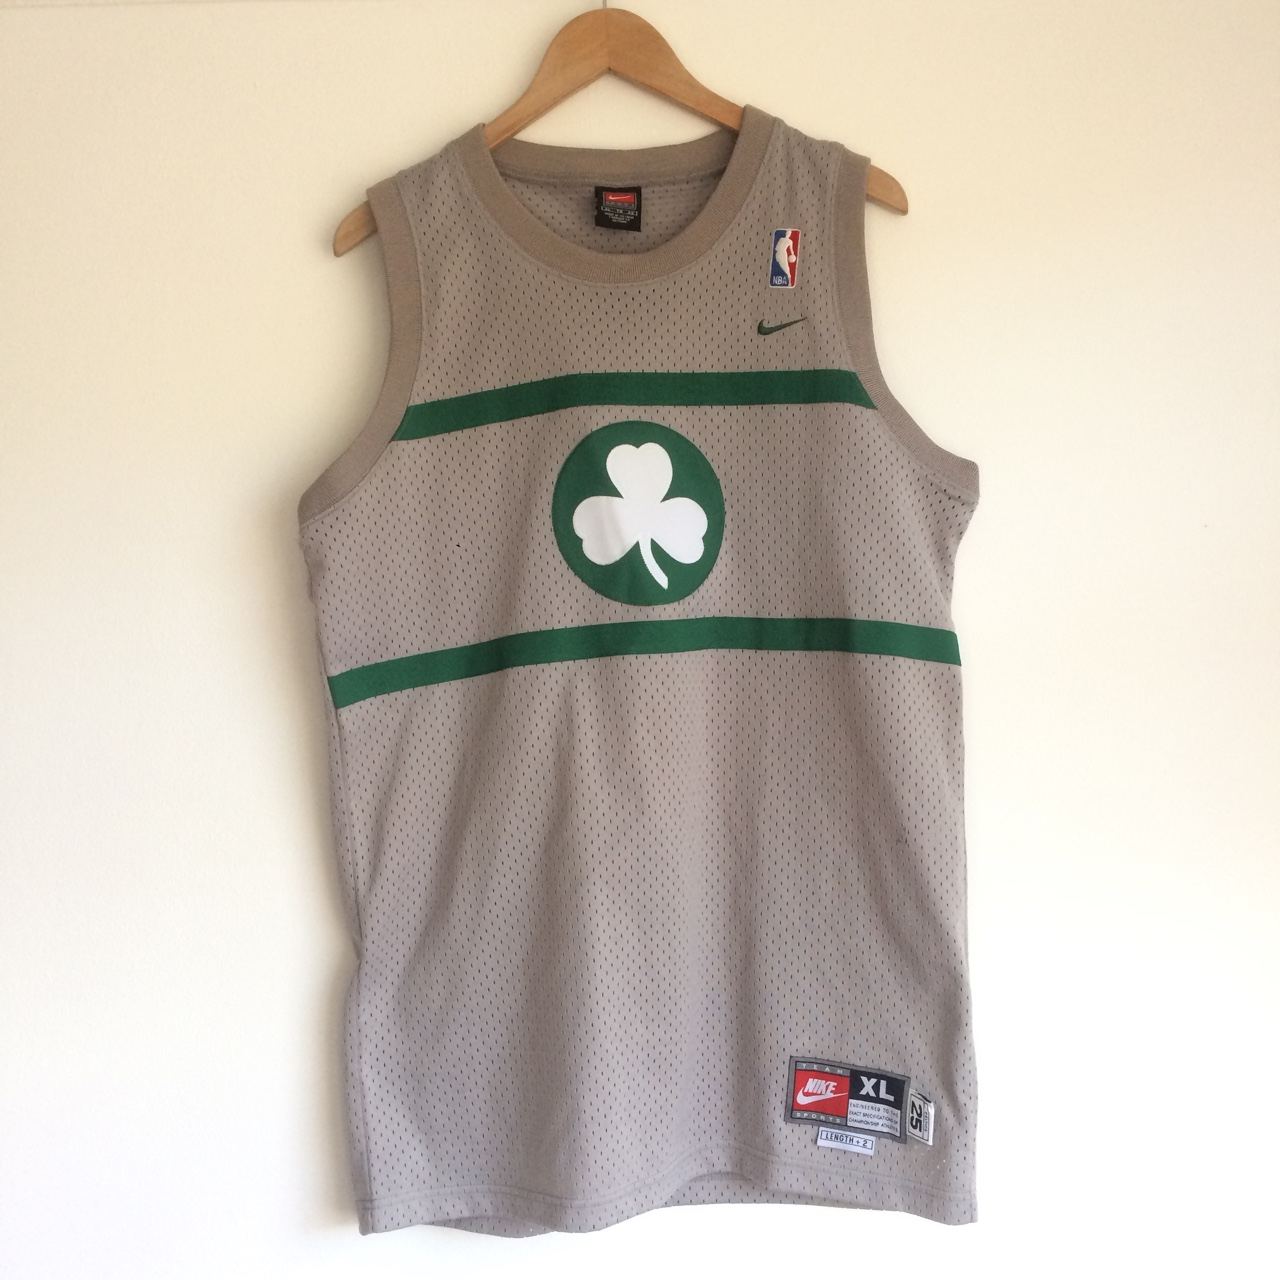 size 40 2202c 85d7f Nike Boston celtics training jersey not too loose... - Depop